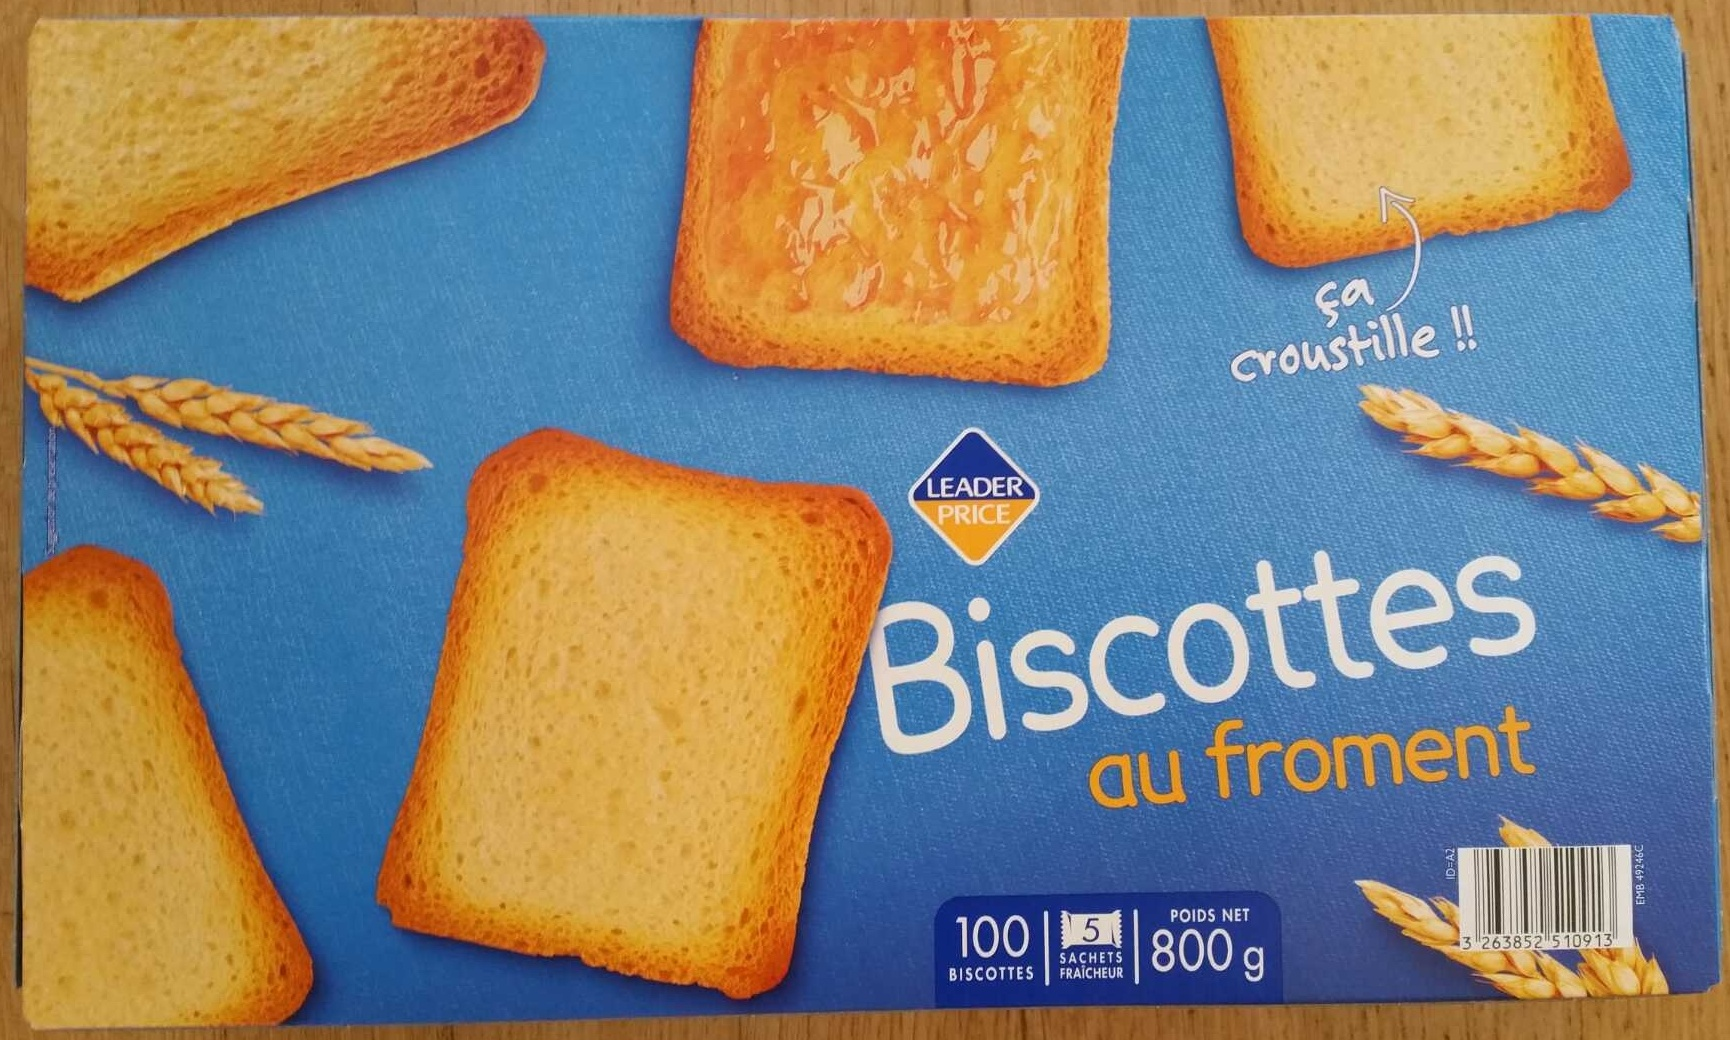 Biscottes au froment - Producto